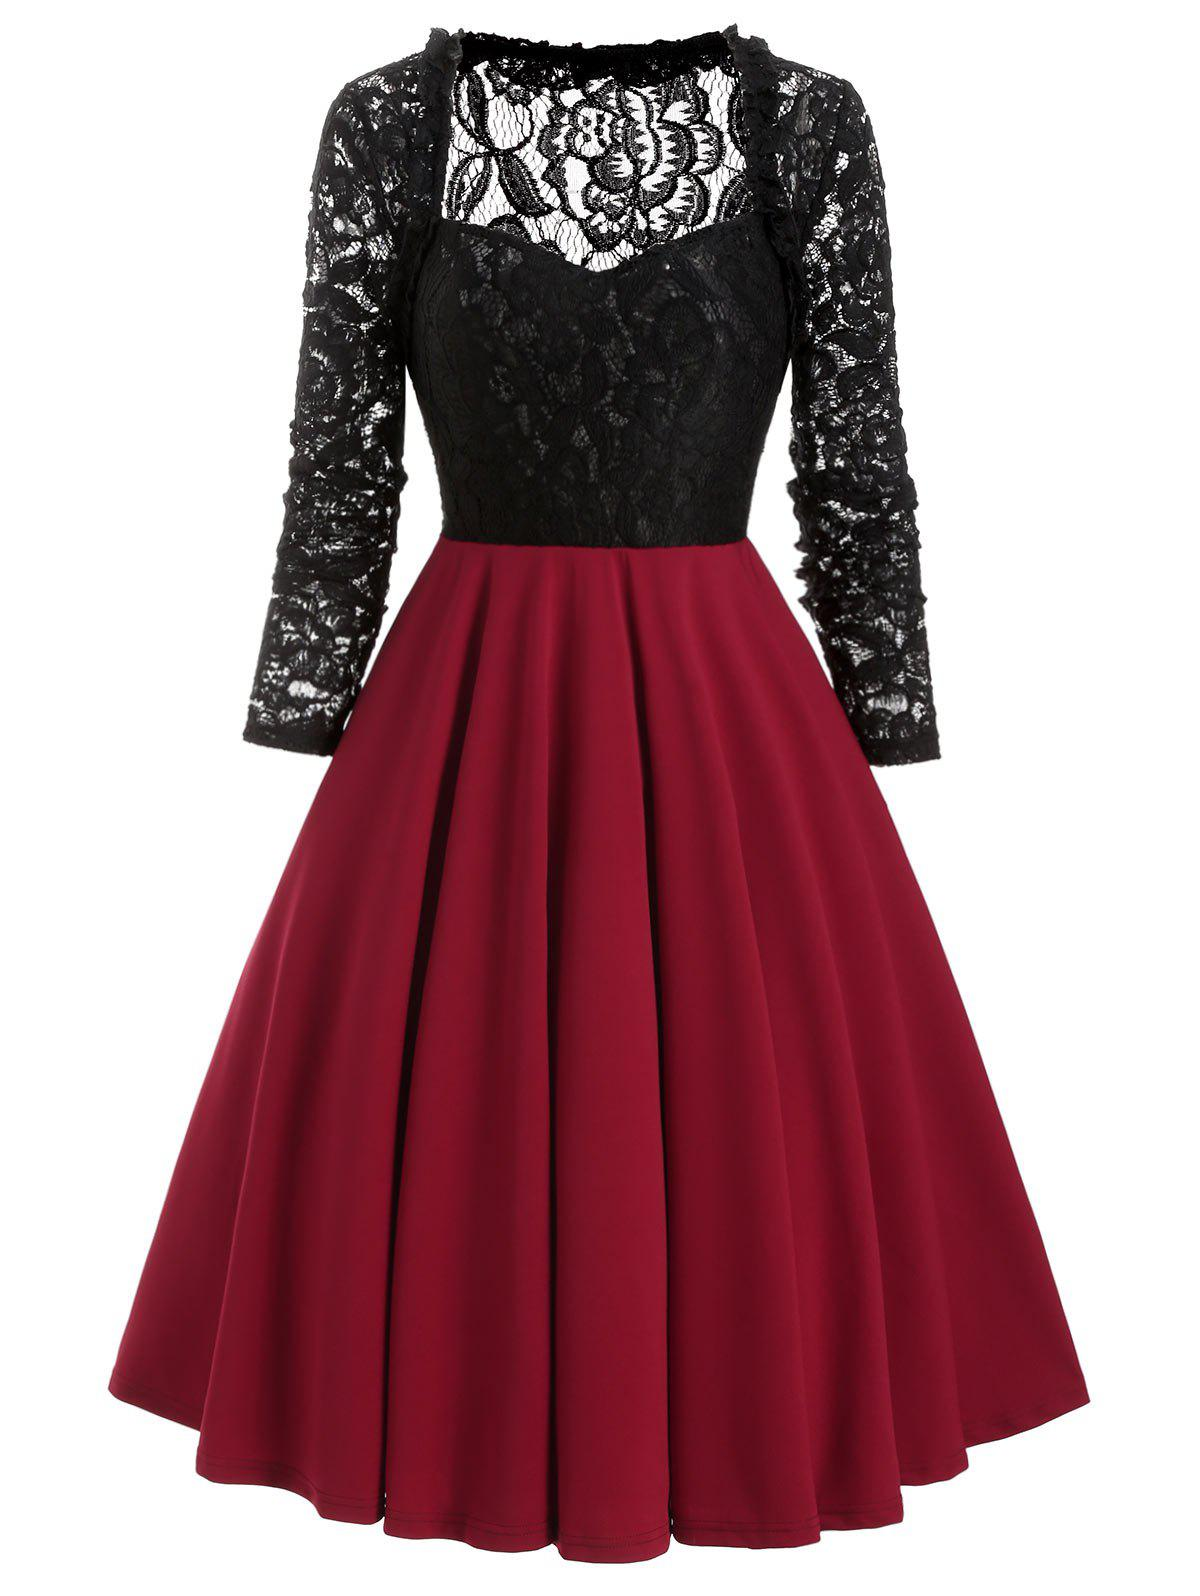 Sweetheart Neck Lace Bodice Fit and Flare Dress - RED WINE S